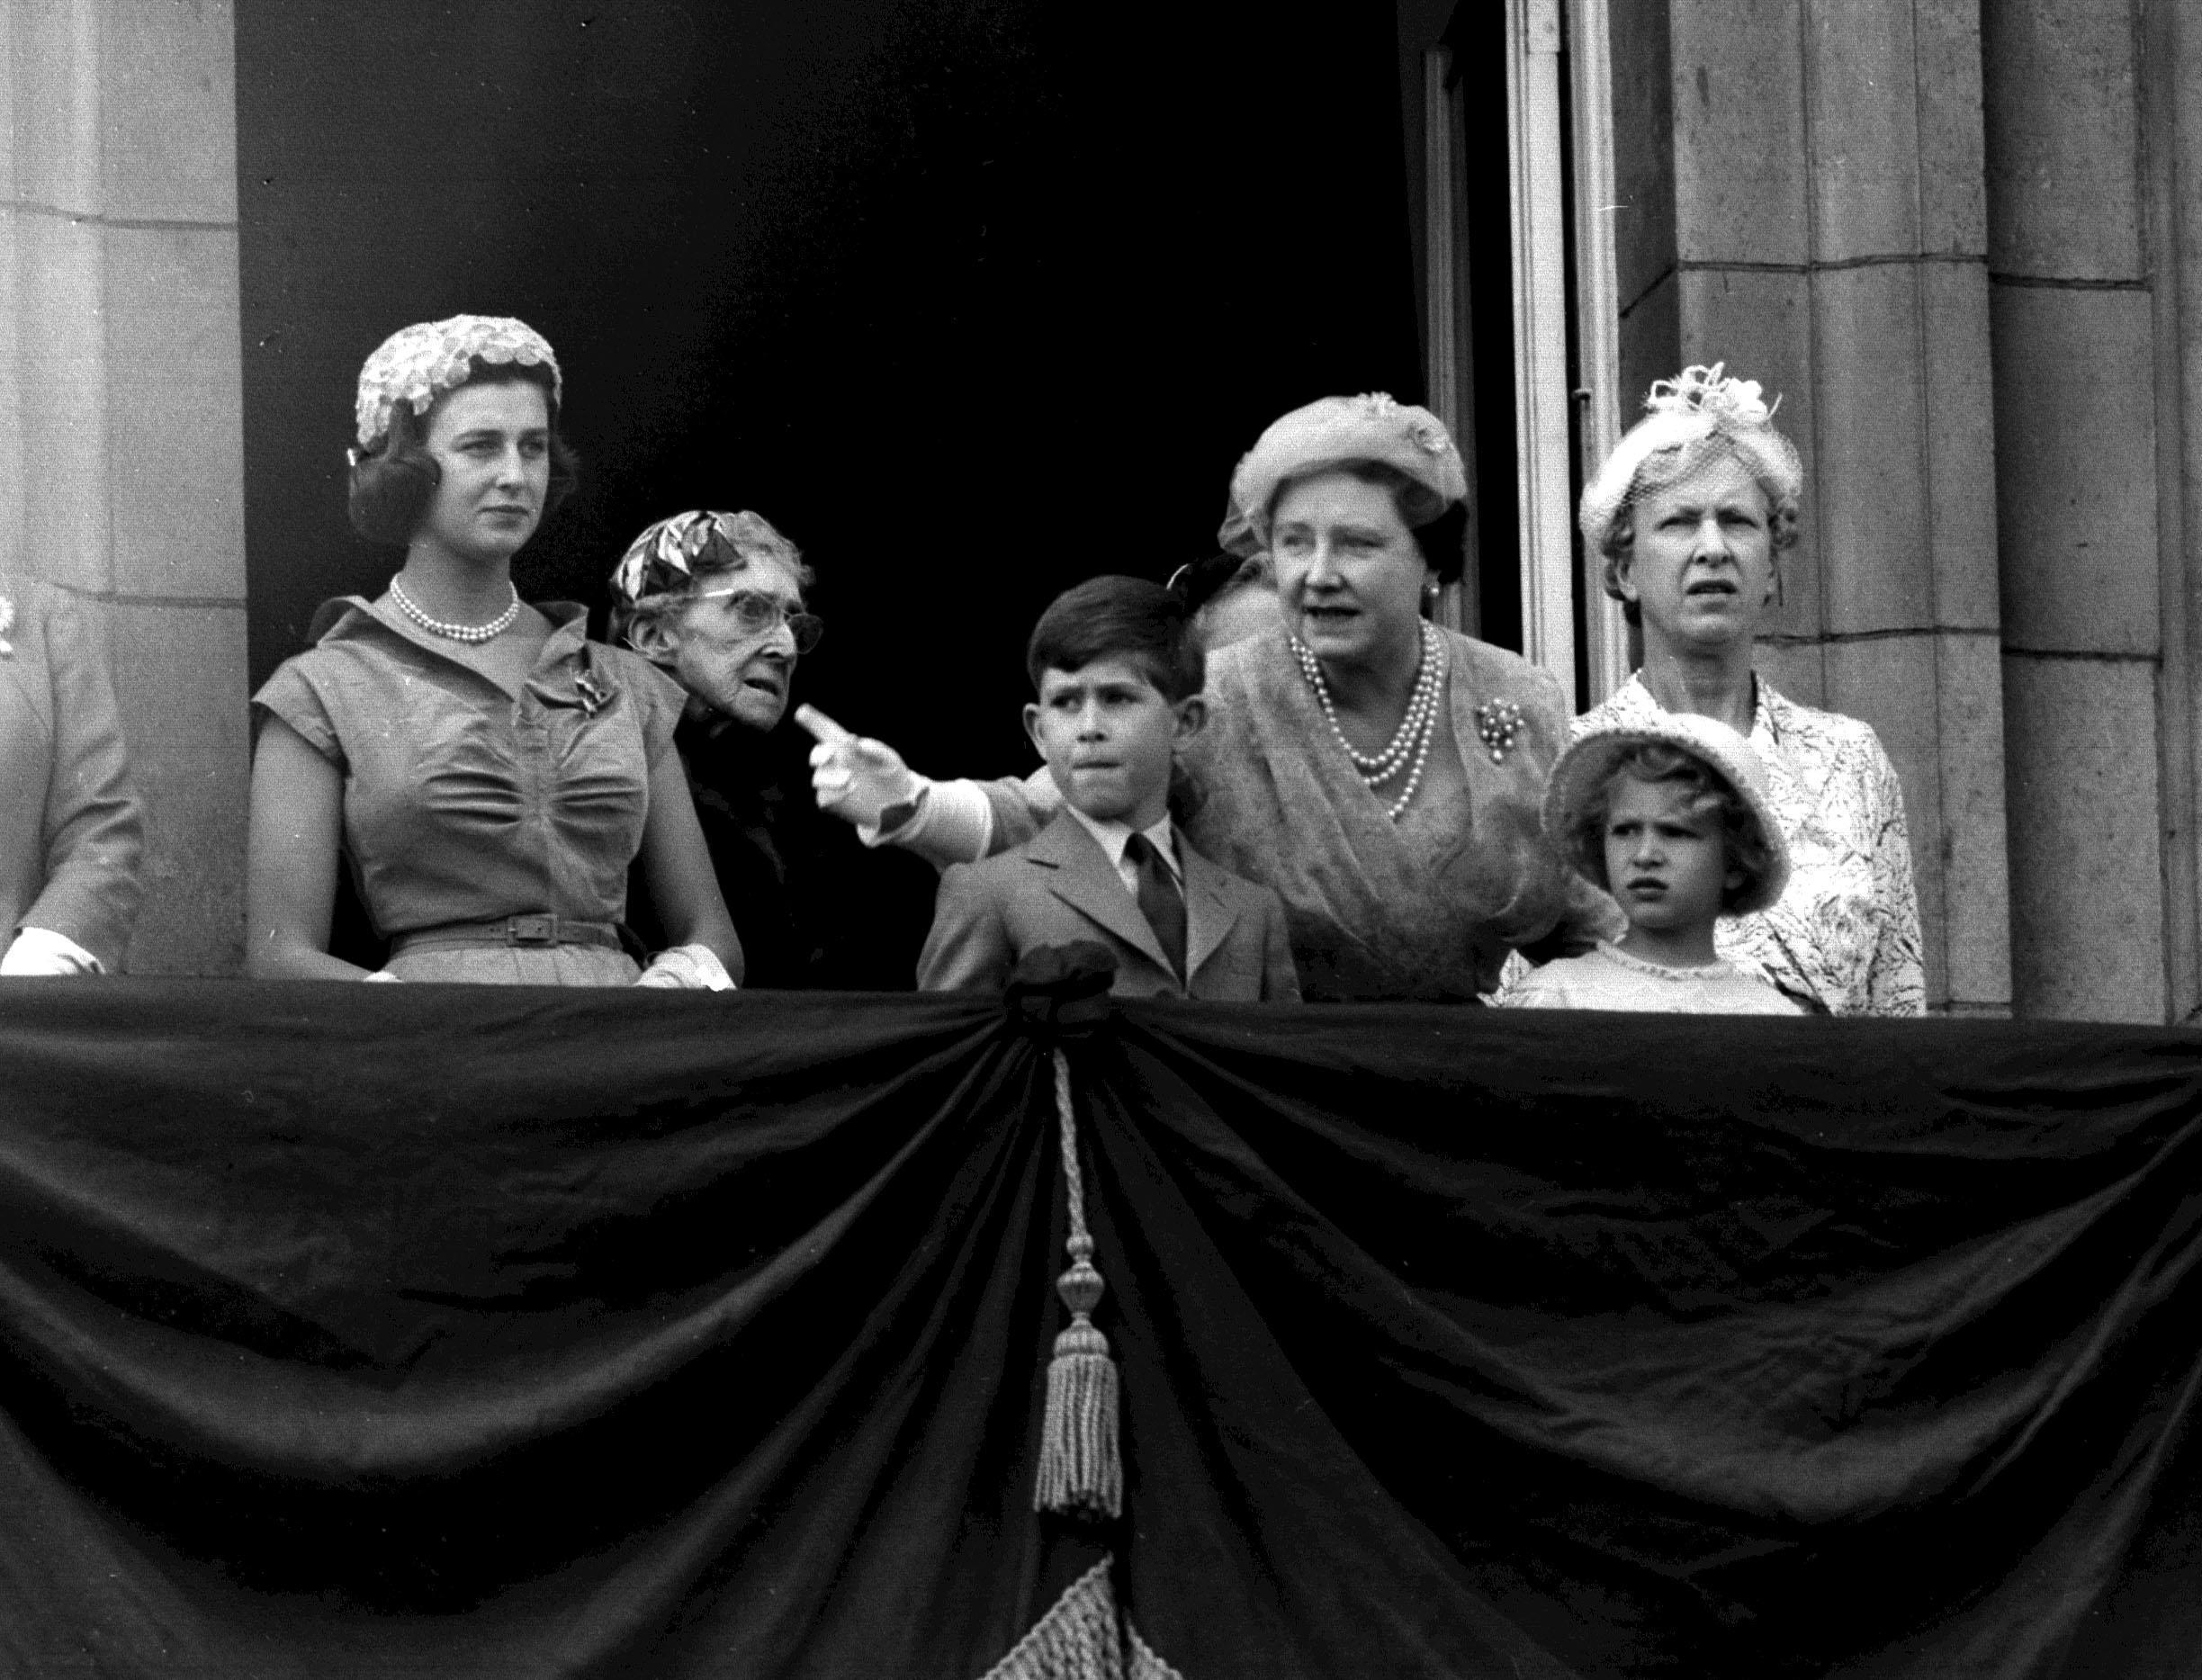 Prince Charles and Princess Anne pictured on the Buckingham Palace in 1956 during Trooping the Colour with the Queen Mother. [Photo: PA]